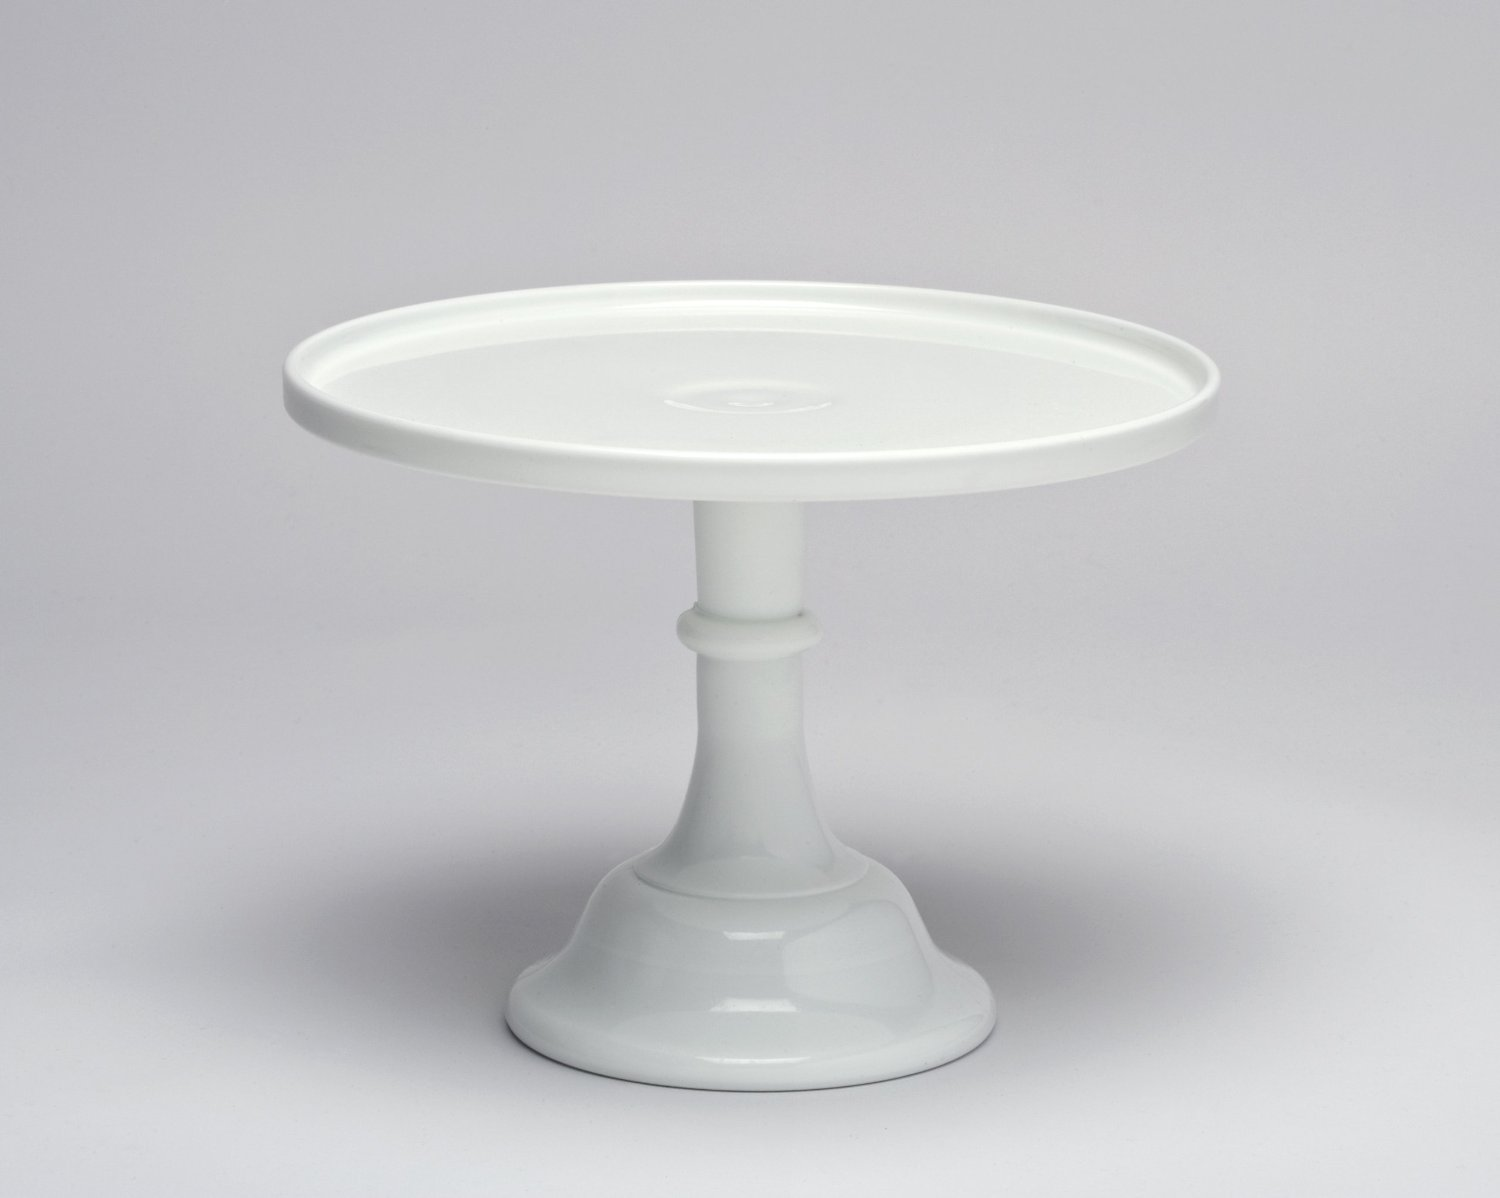 White Cake Stands Amazon